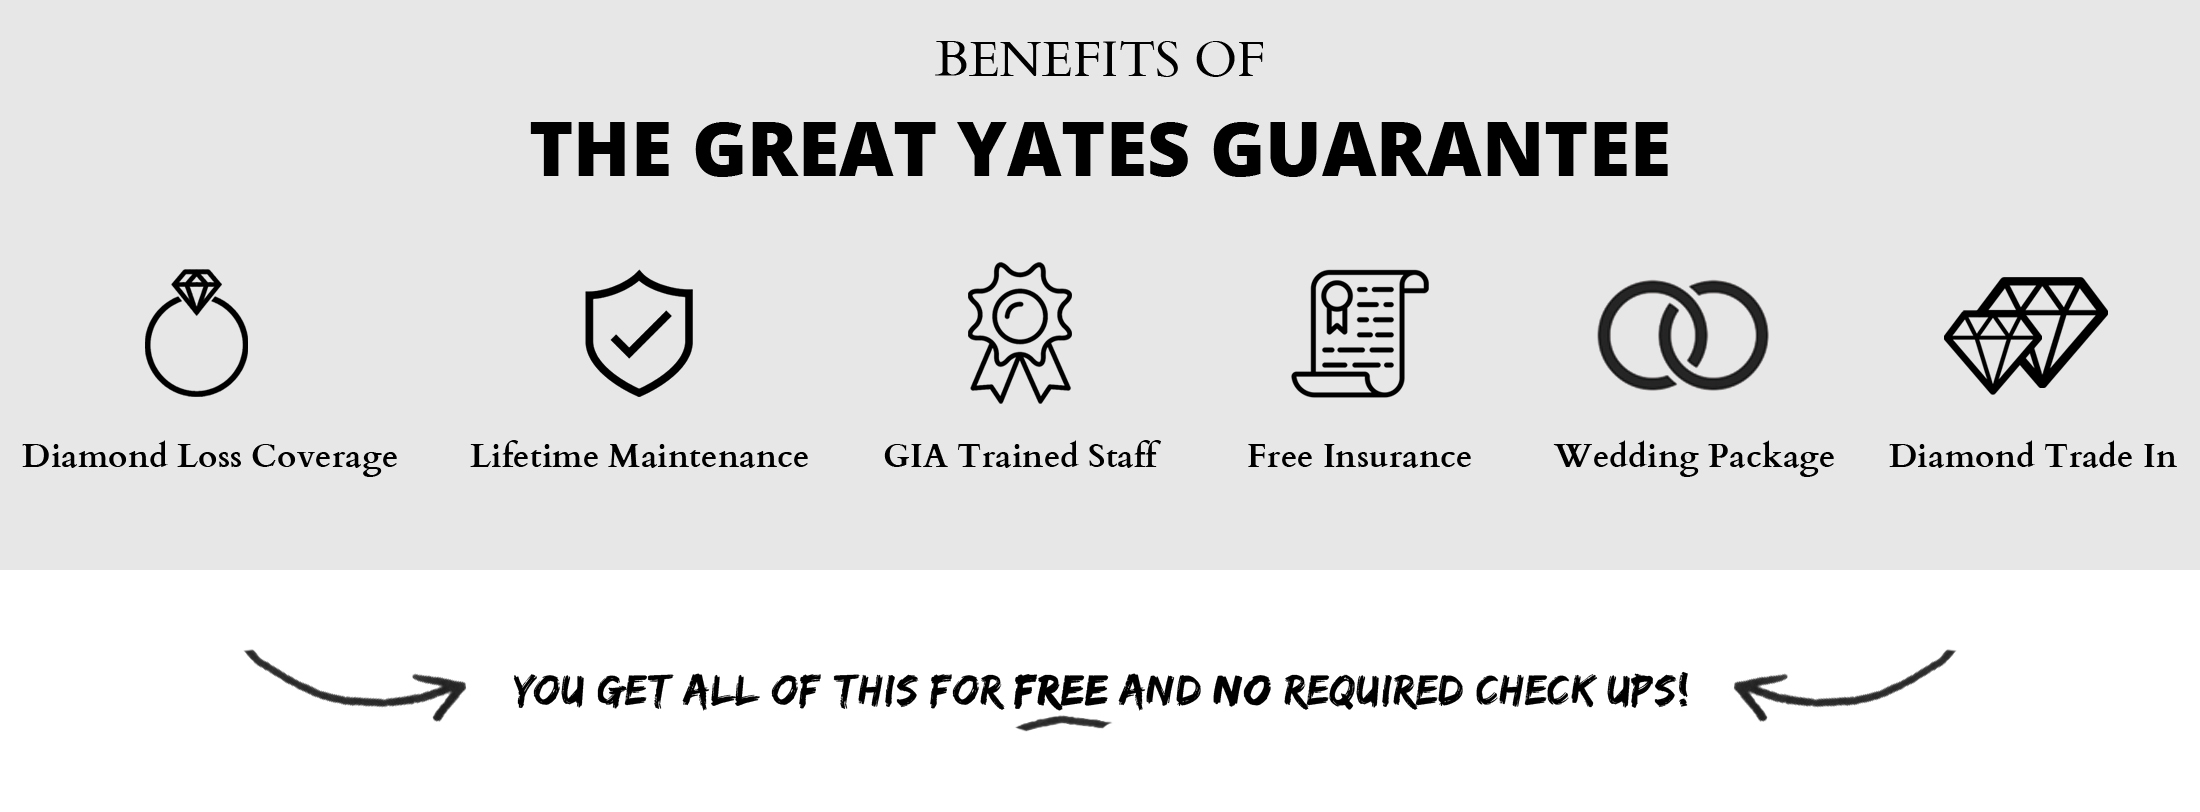 The Great Yates Guarantee Benefits